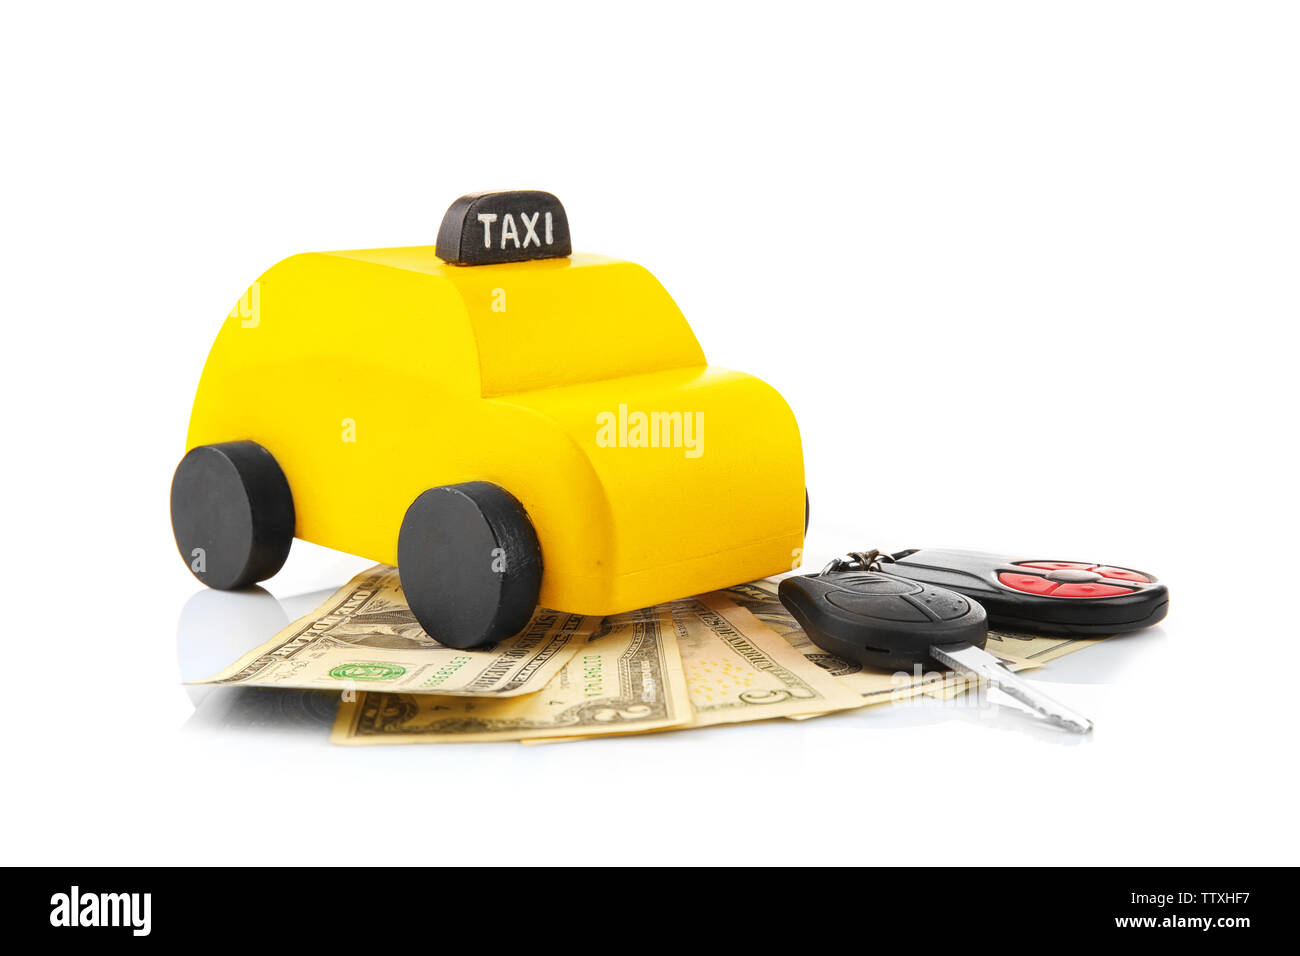 Yellow toy taxi with money and car key on white background - Stock Image